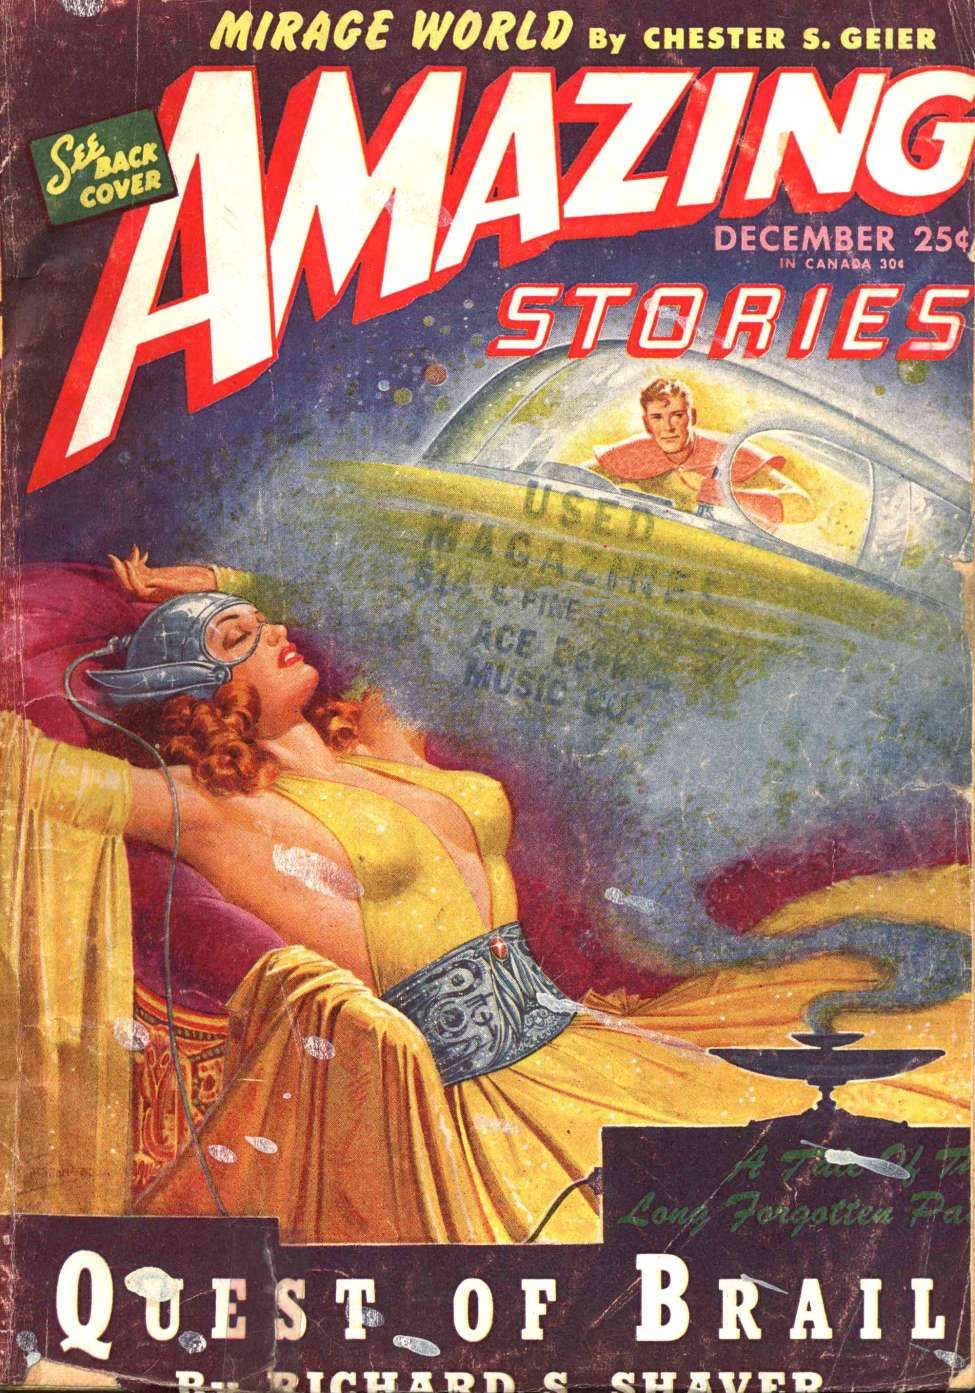 Comic Book Cover For Amazing Stories v19 04